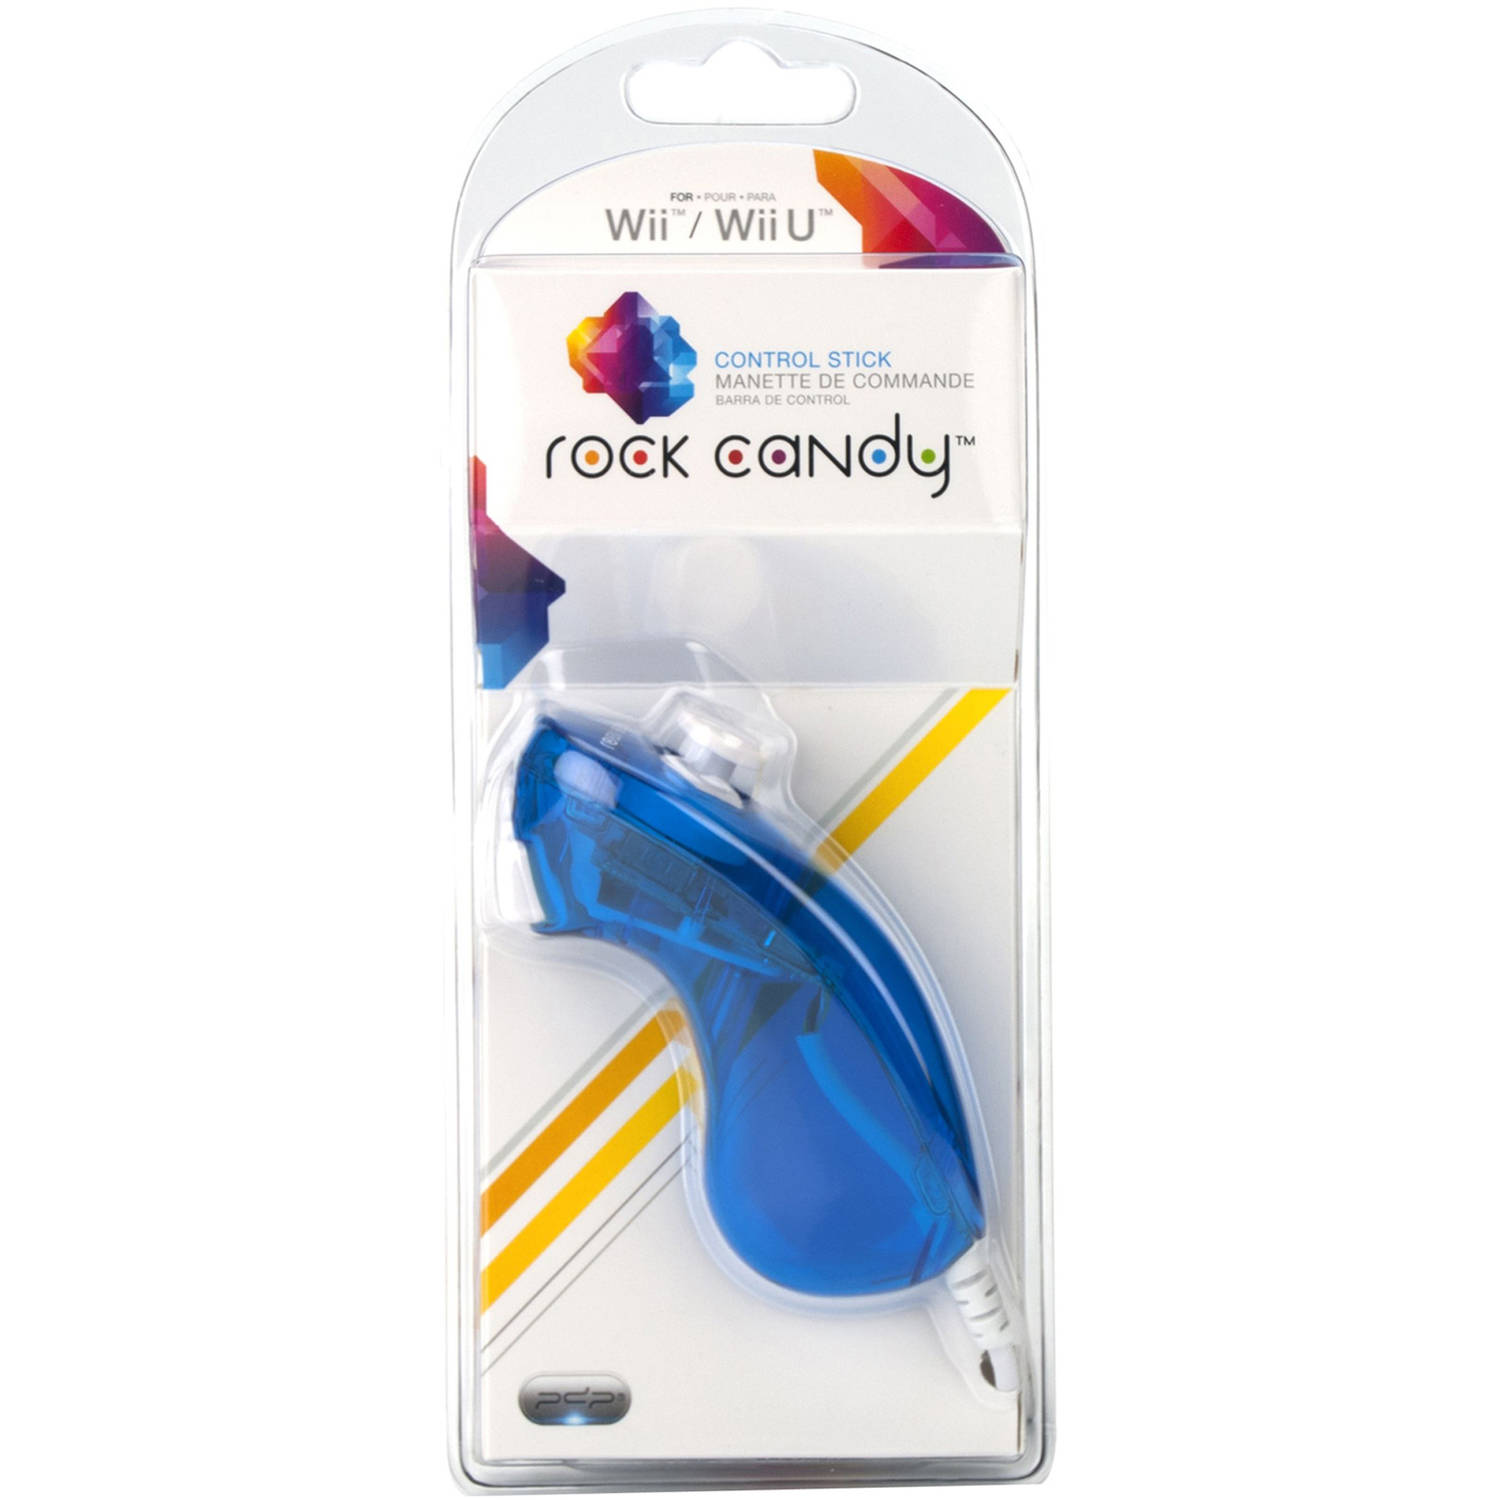 PDP Rock Candy  Control Stick for Wii/Wii U, Blueberry Boom